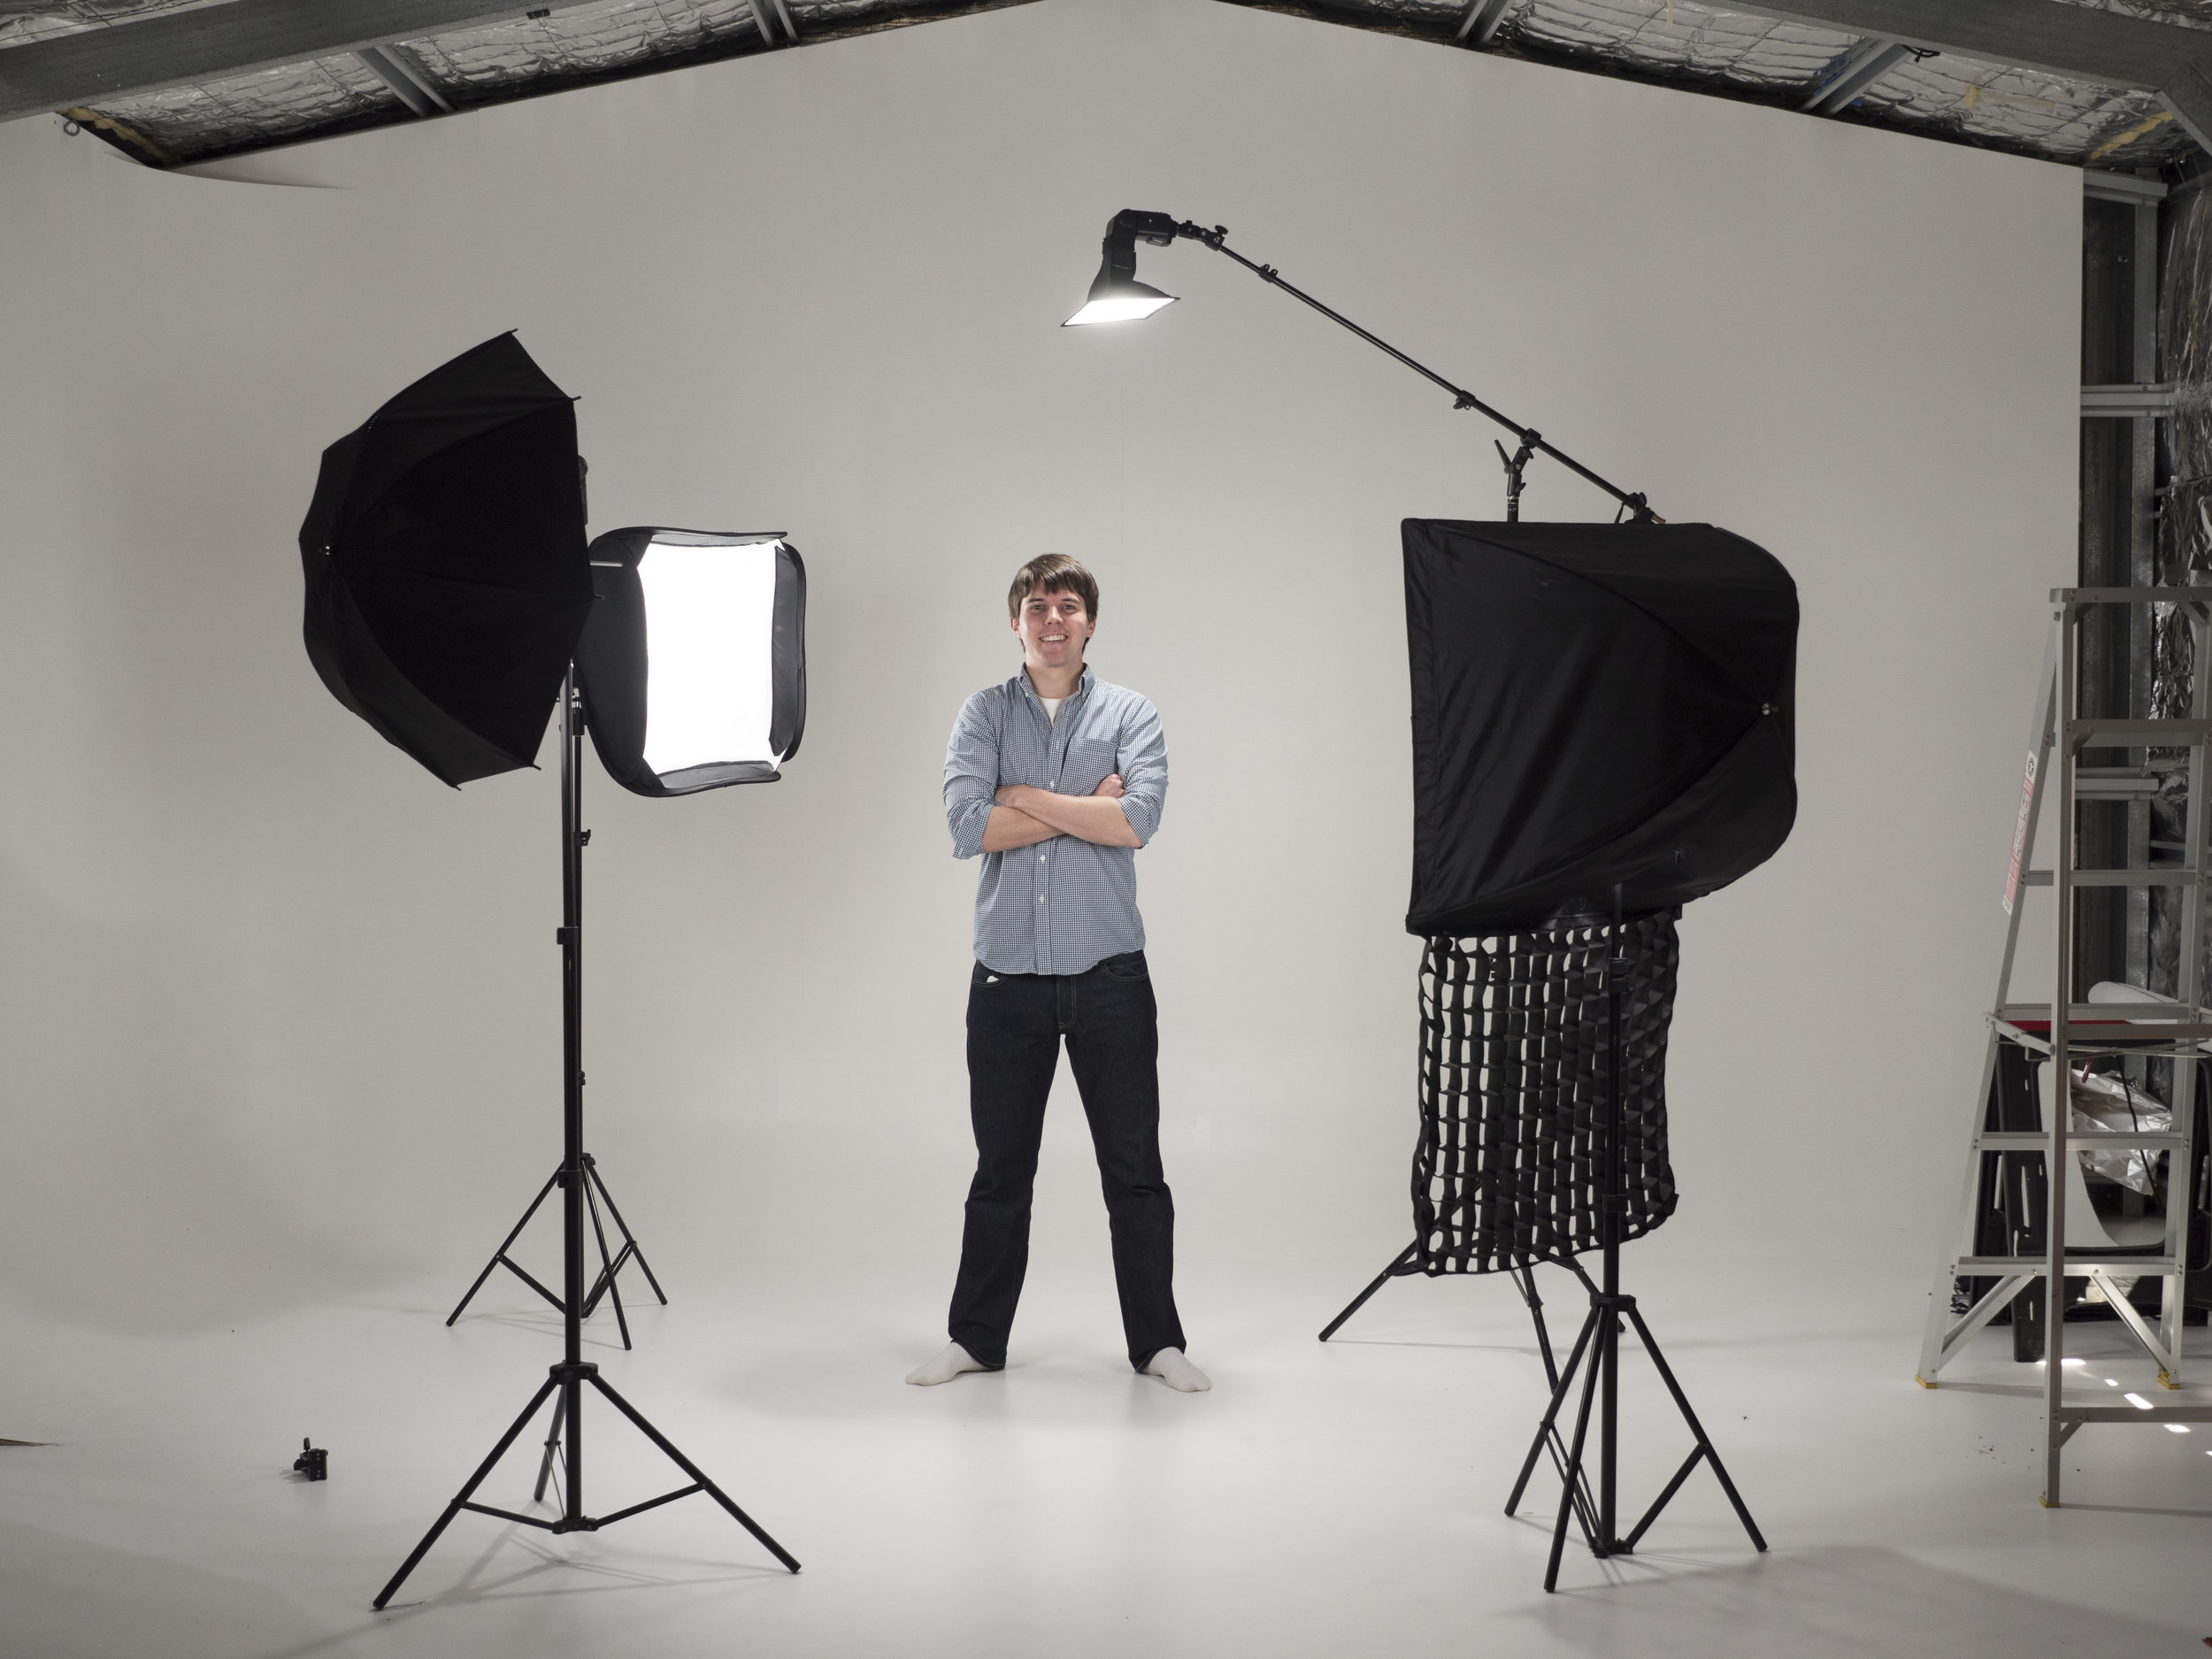 andrew in photostudio.jpg